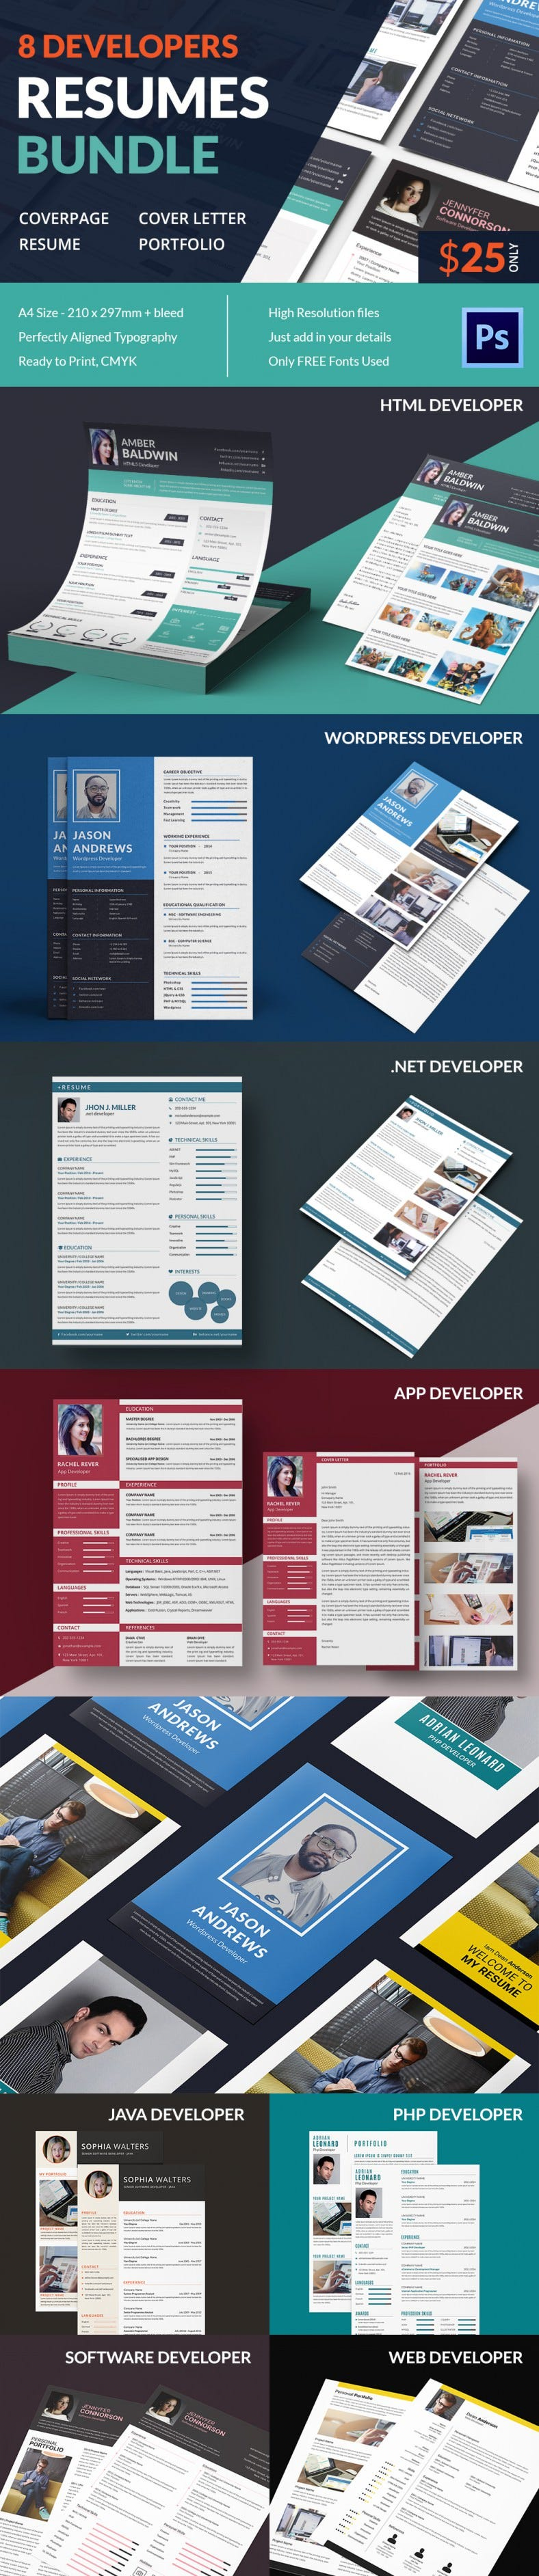 DeveloperResume_Bundle